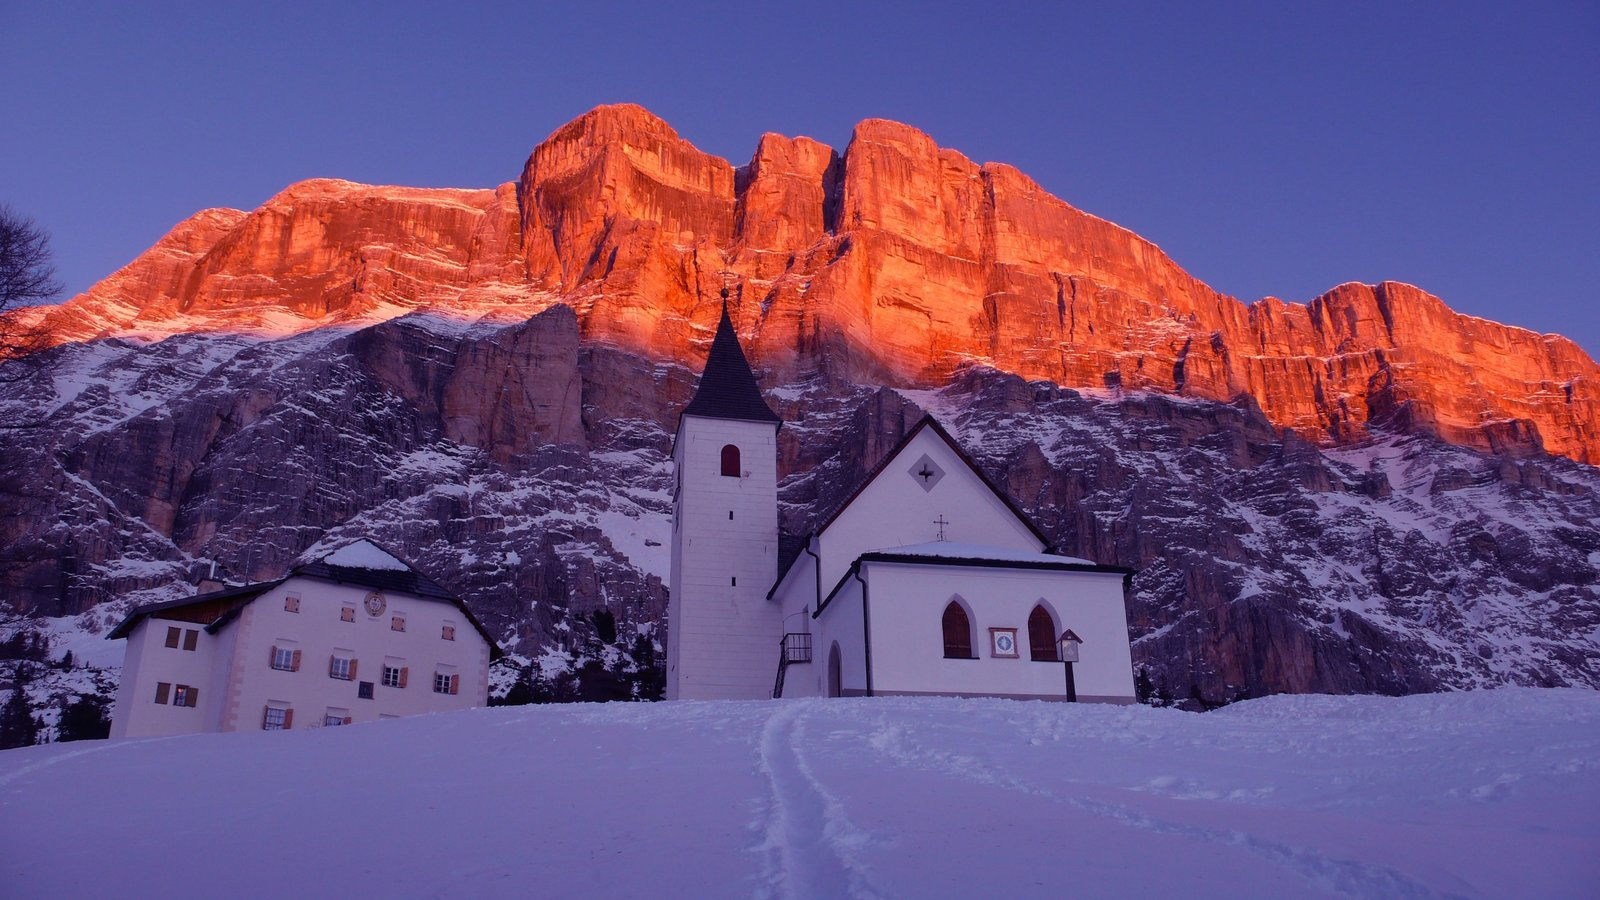 Alta Badia showing mountains, a church or cathedral and snow